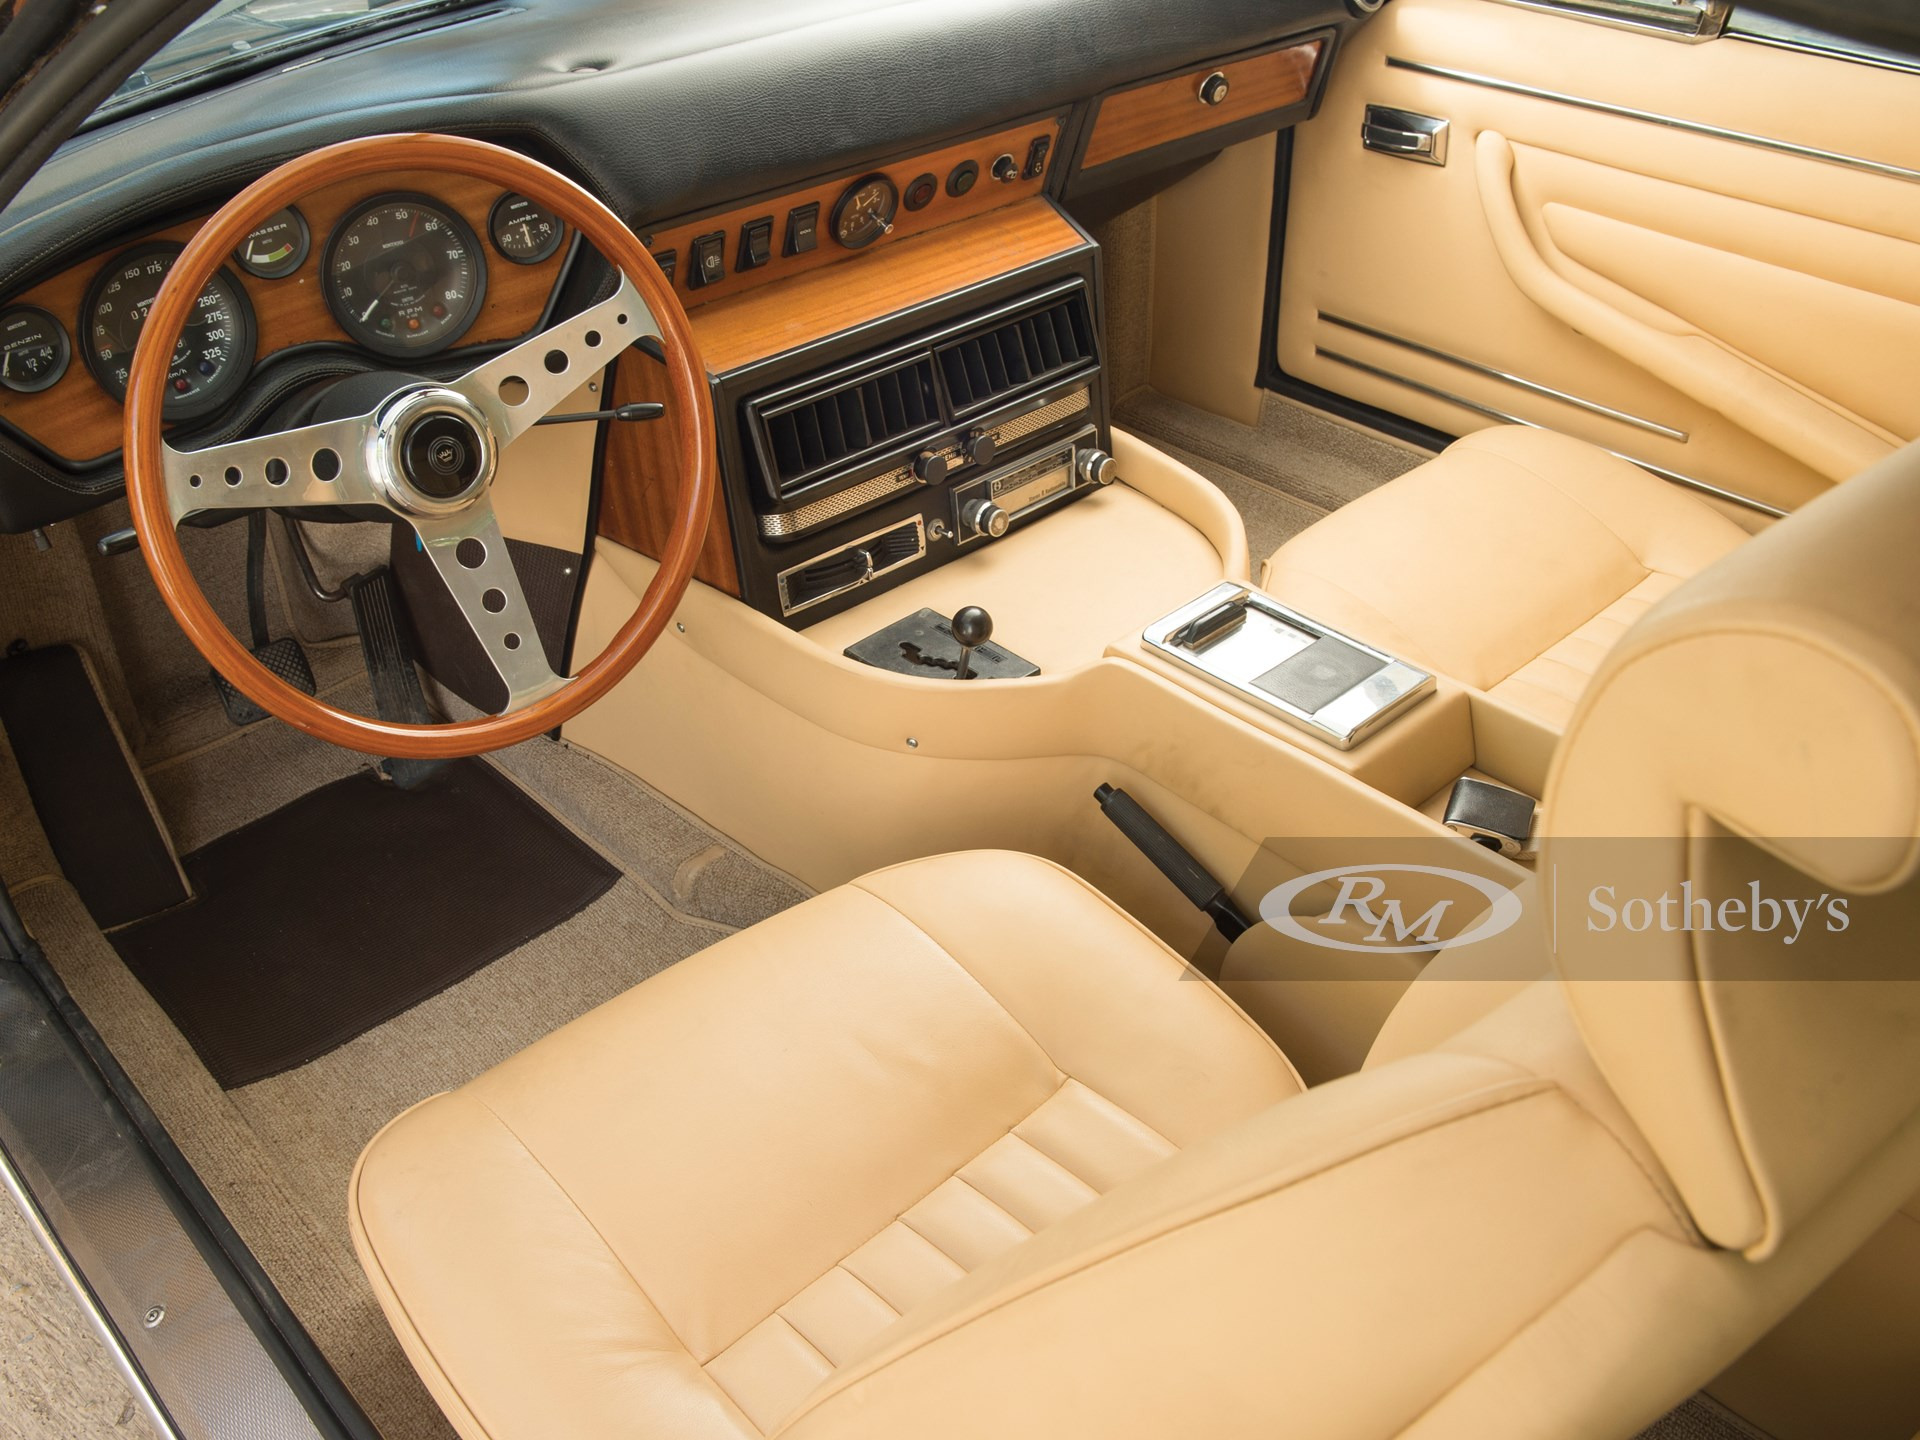 1971 Monteverdi 375/L High Speed Coupé by Fissore -